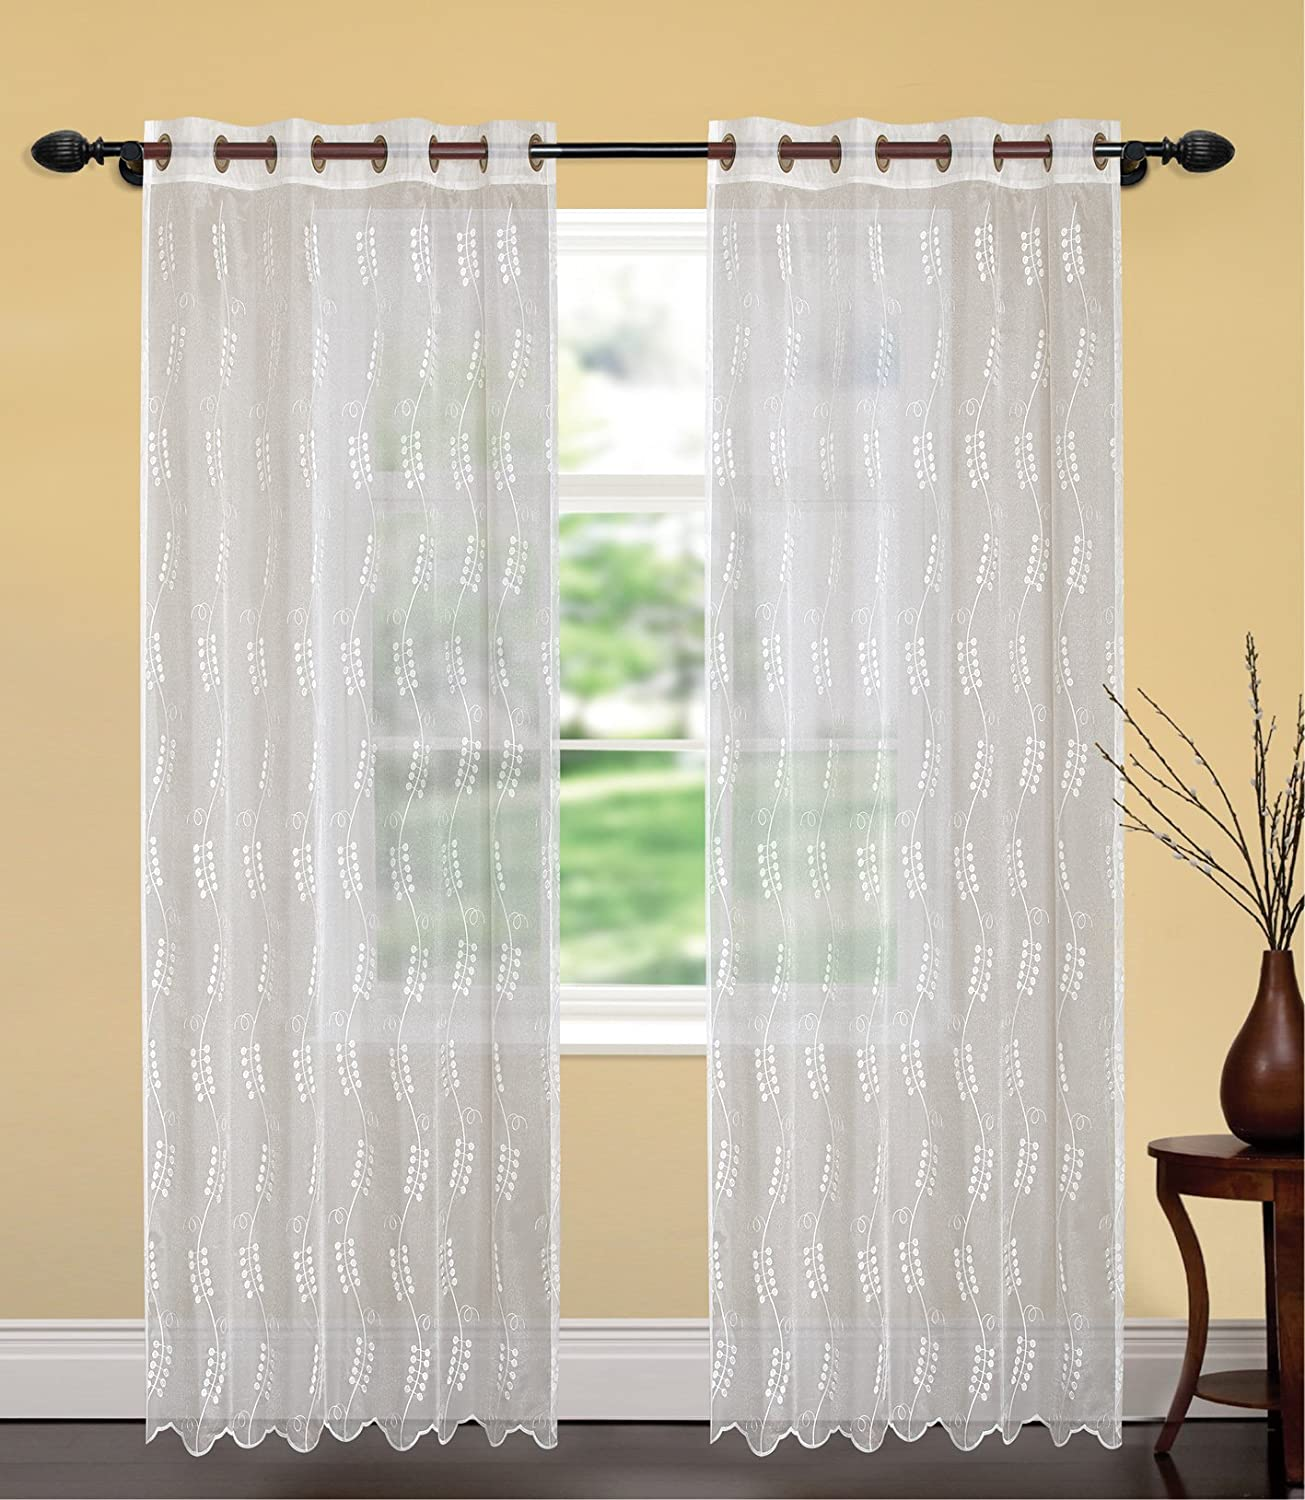 United Linens- 1 piece Embroidery window curtains jamine 52x84 white White Window treatments for kitchen and drapes for living room and bedroom panels grommet